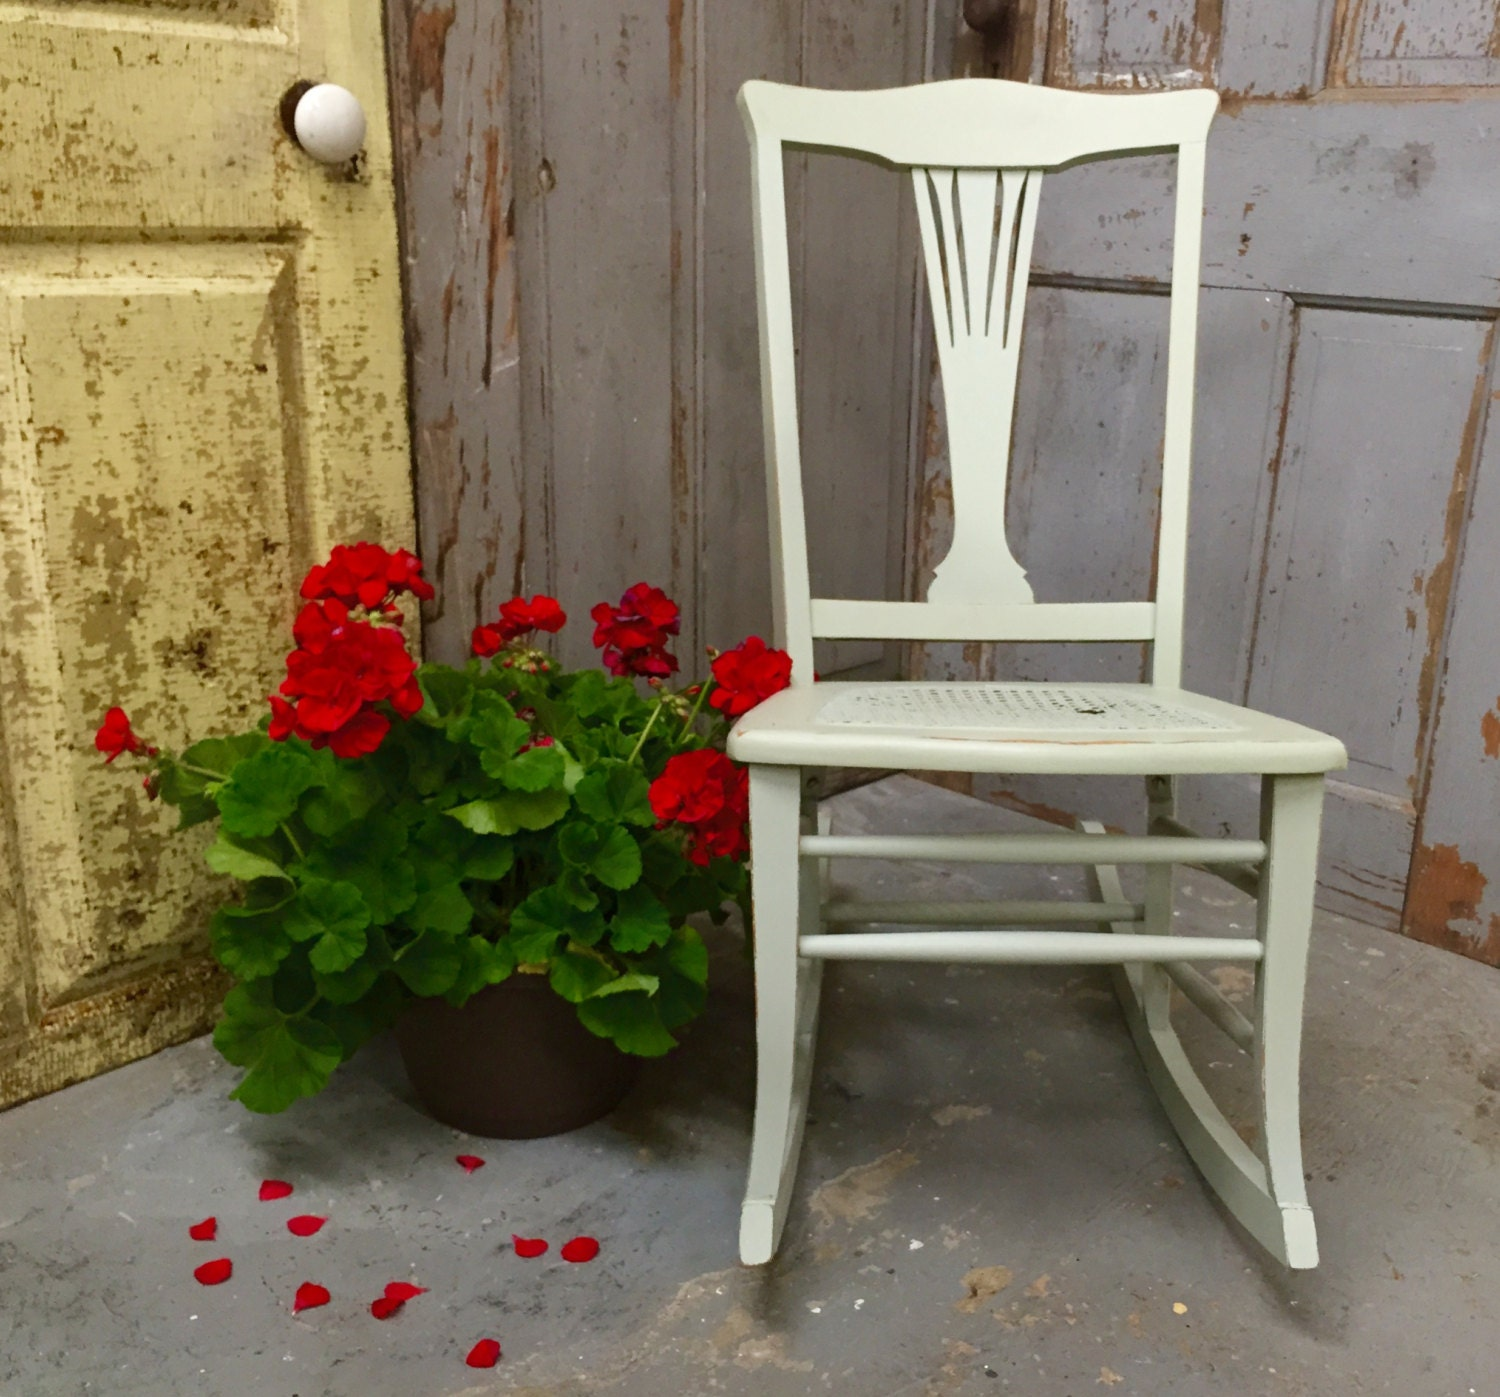 Vintage rocking chair sewing rocker porch decor by vintagehipdecor